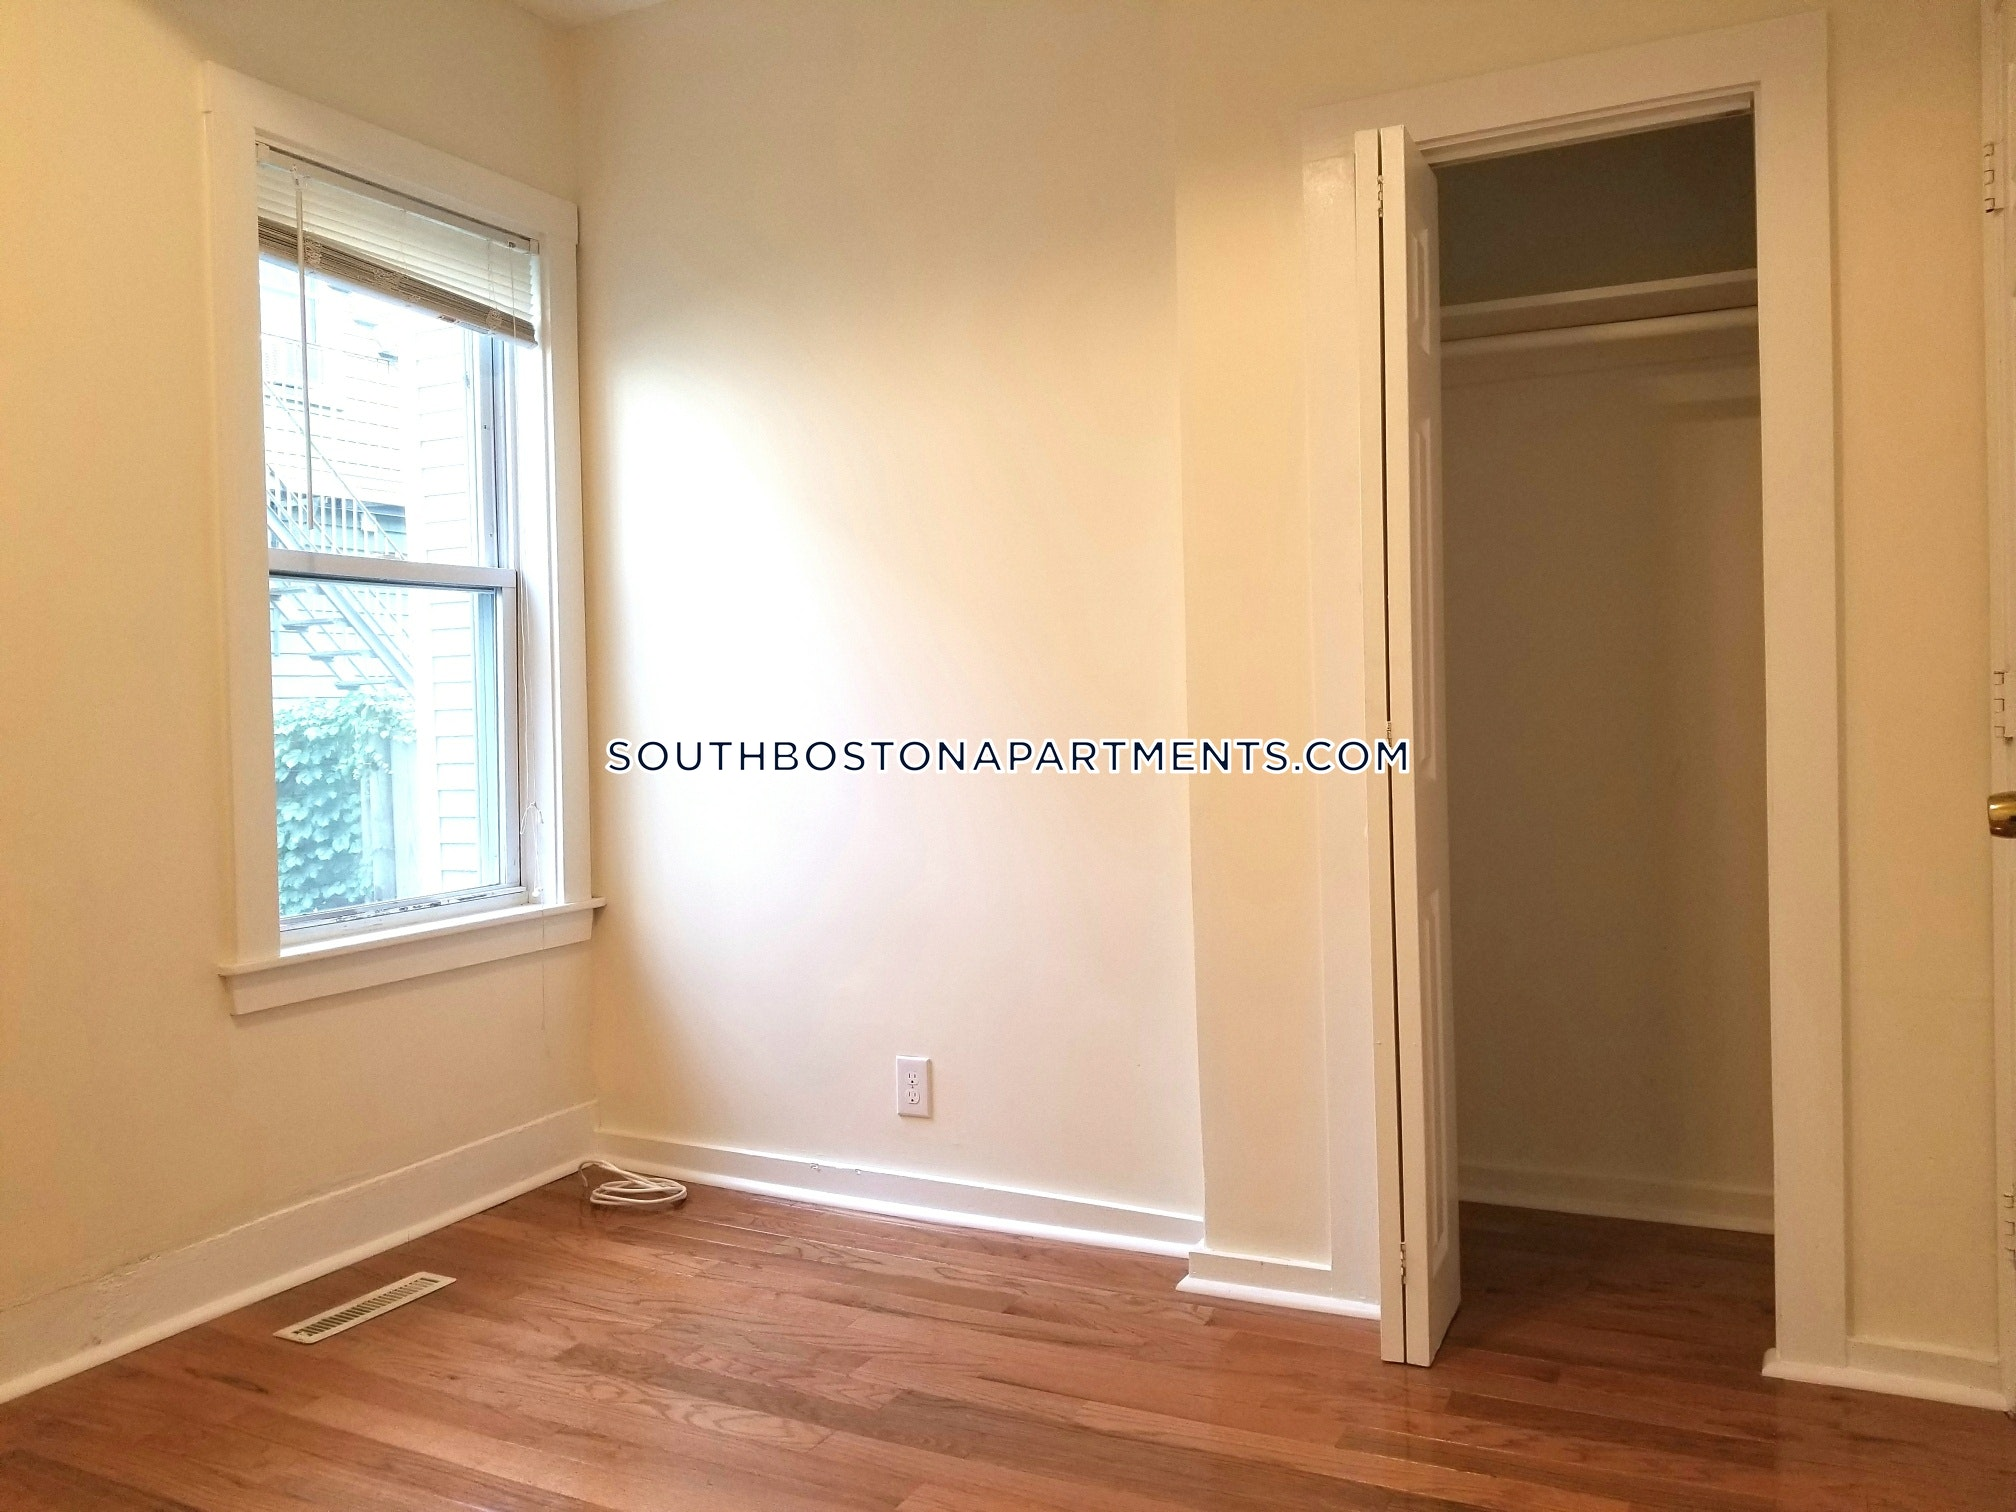 Back Bay Apartments Stunning one bedroom apartment Boston